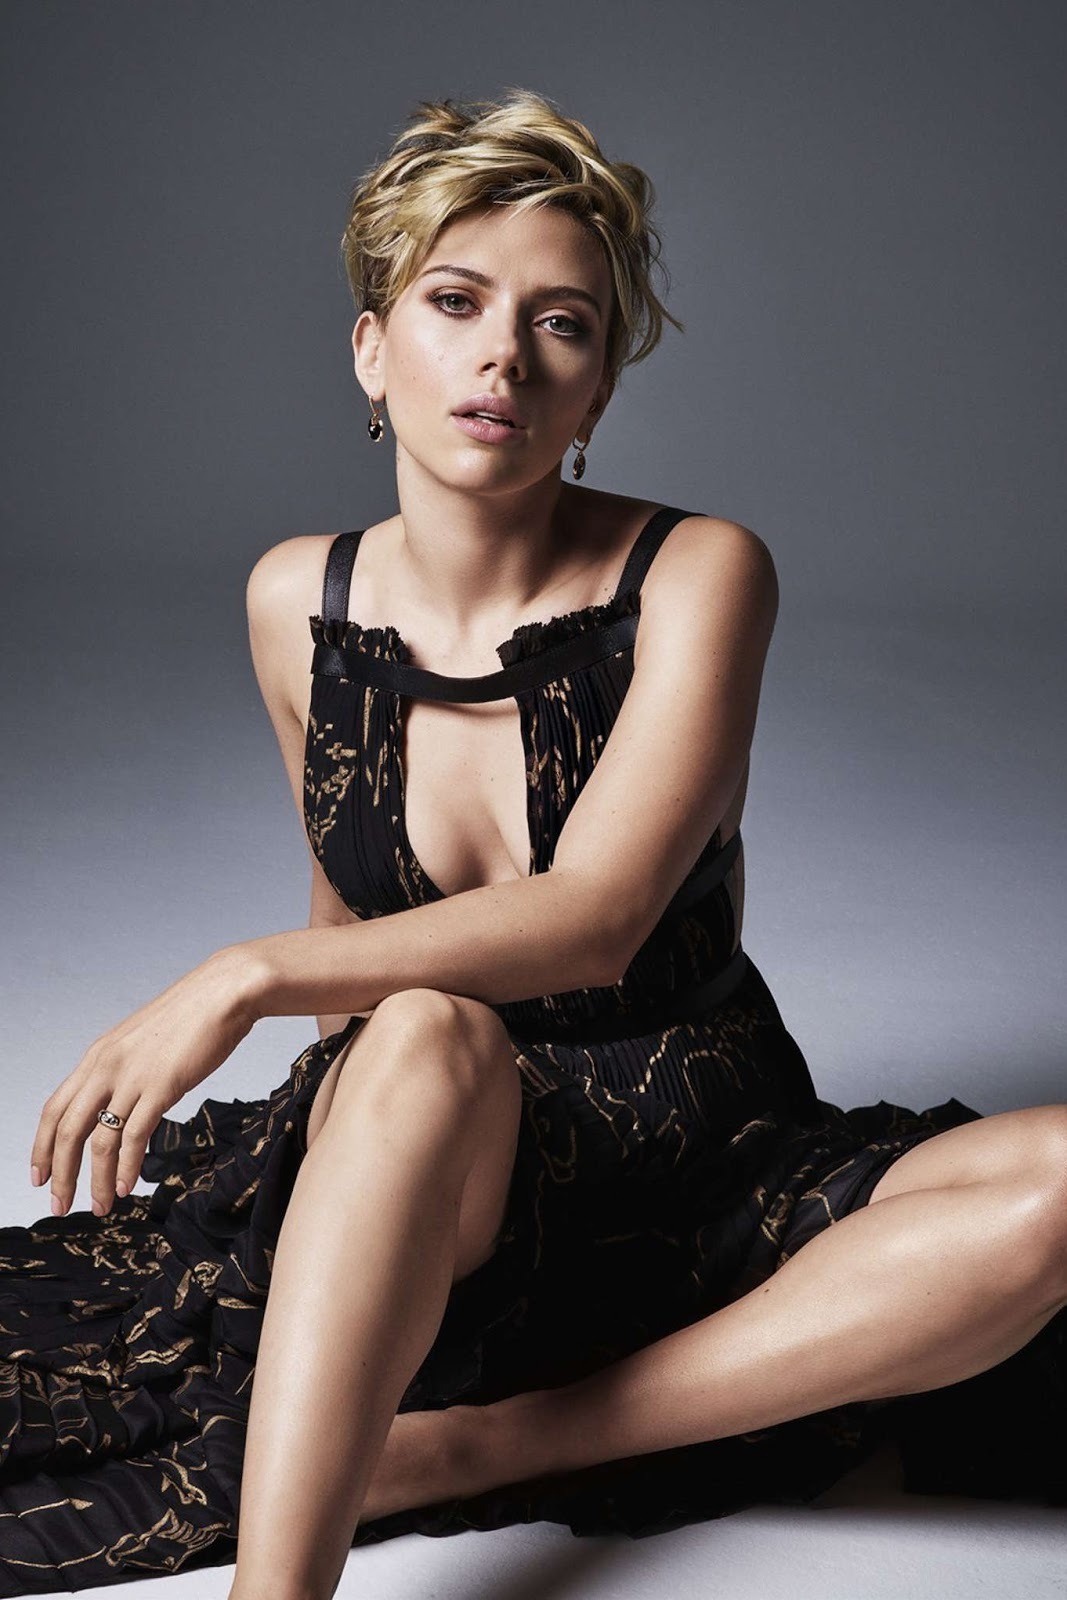 Rambut Pendek Short Hair dan pose Model Scarlett Johansson